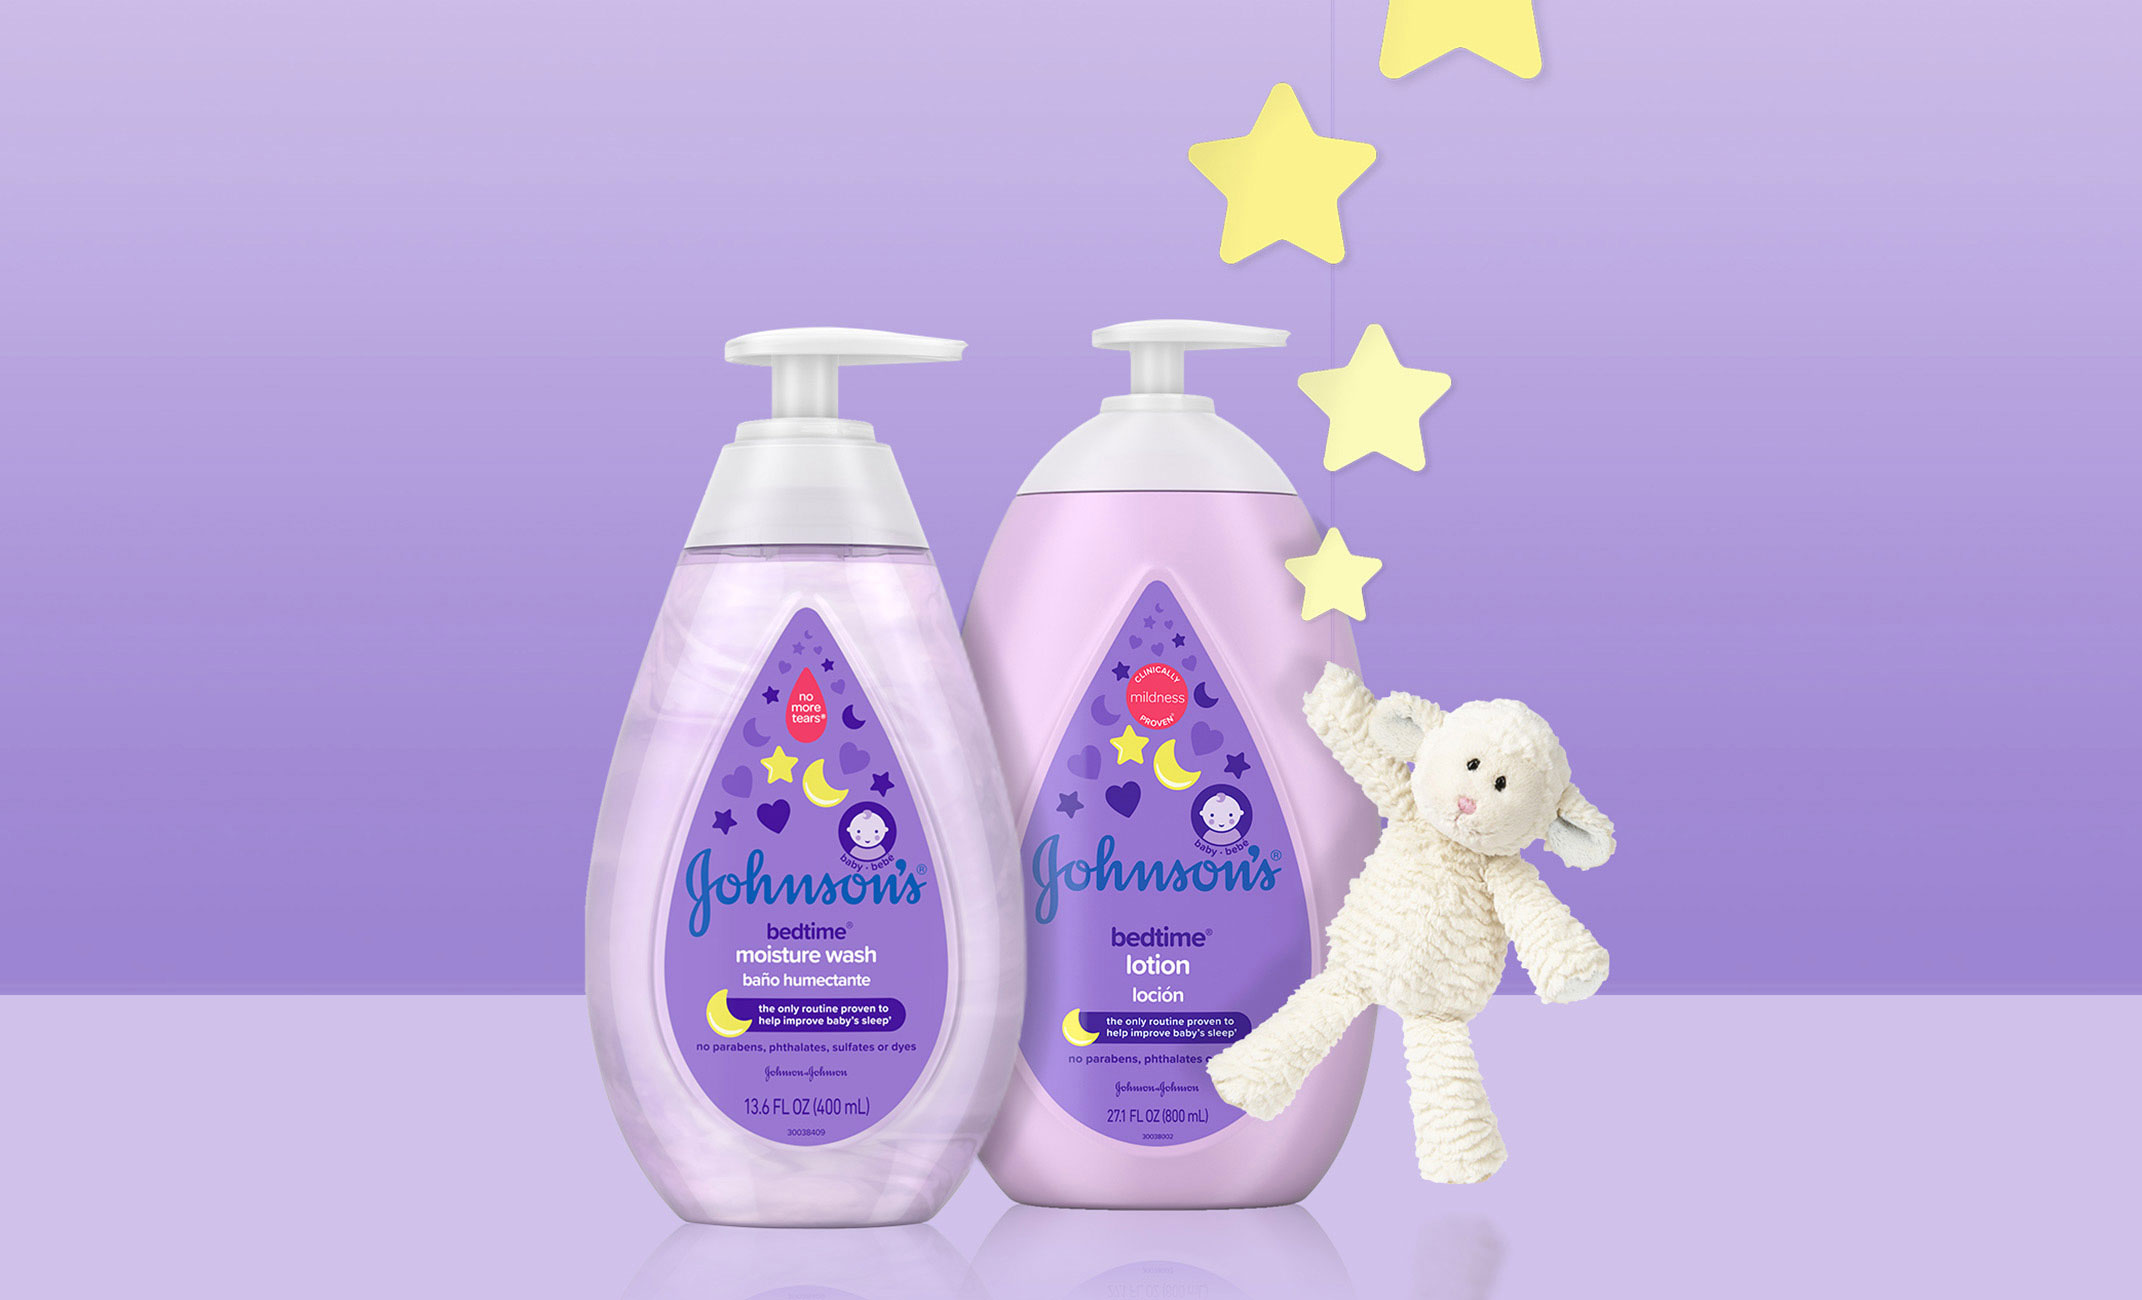 Johnson's® Bedtime® baby lotion and moisture wash